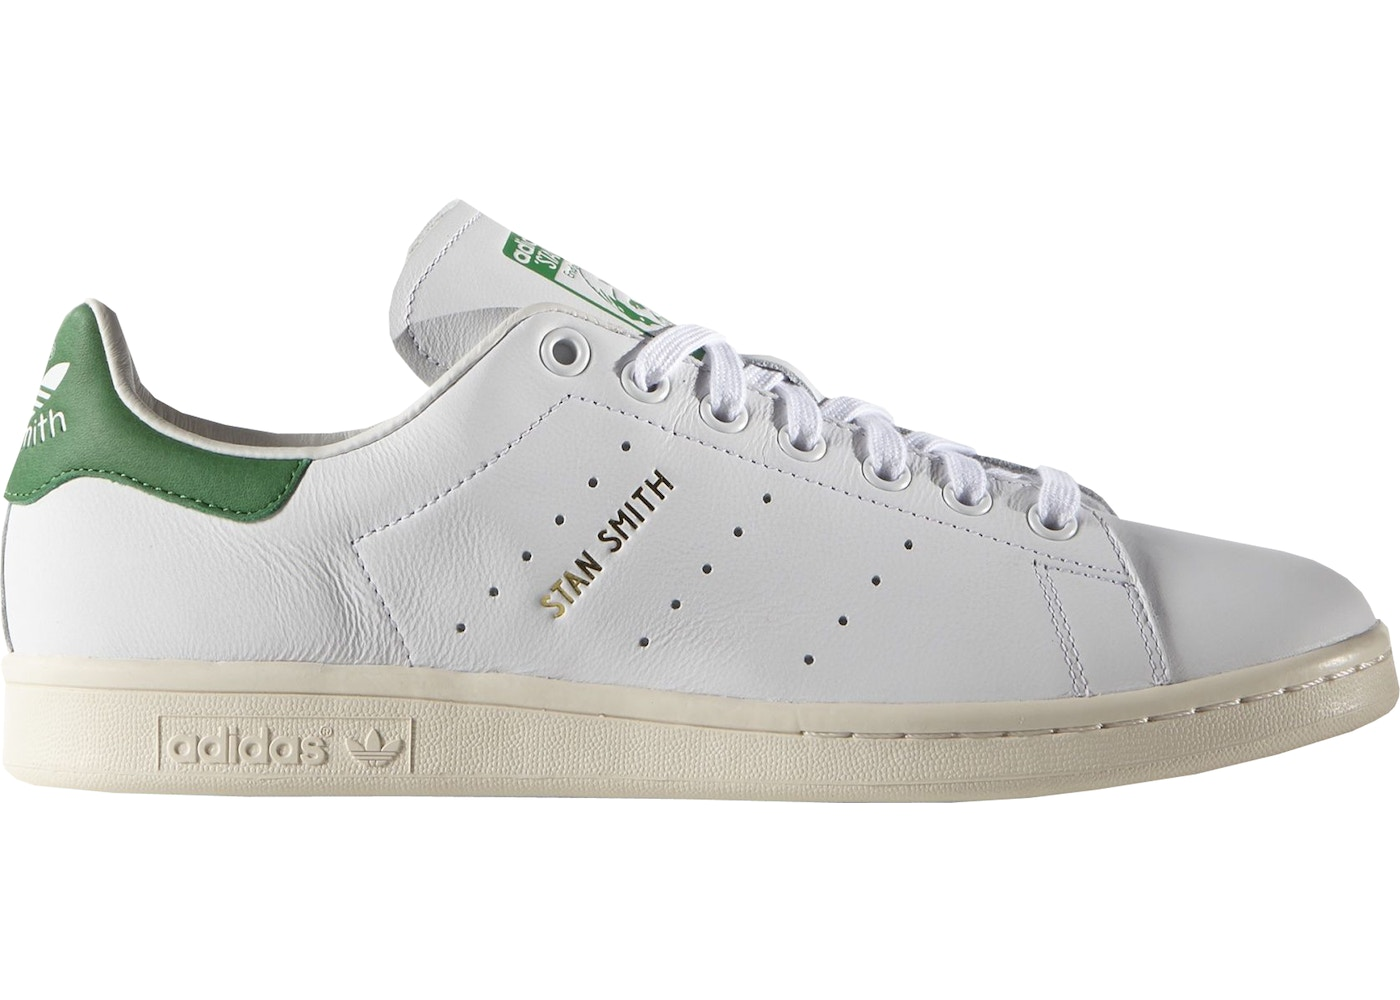 723367a526fafa Sell. or Ask. Size 9. View All Bids. adidas Stan Smith Vintage OG Green